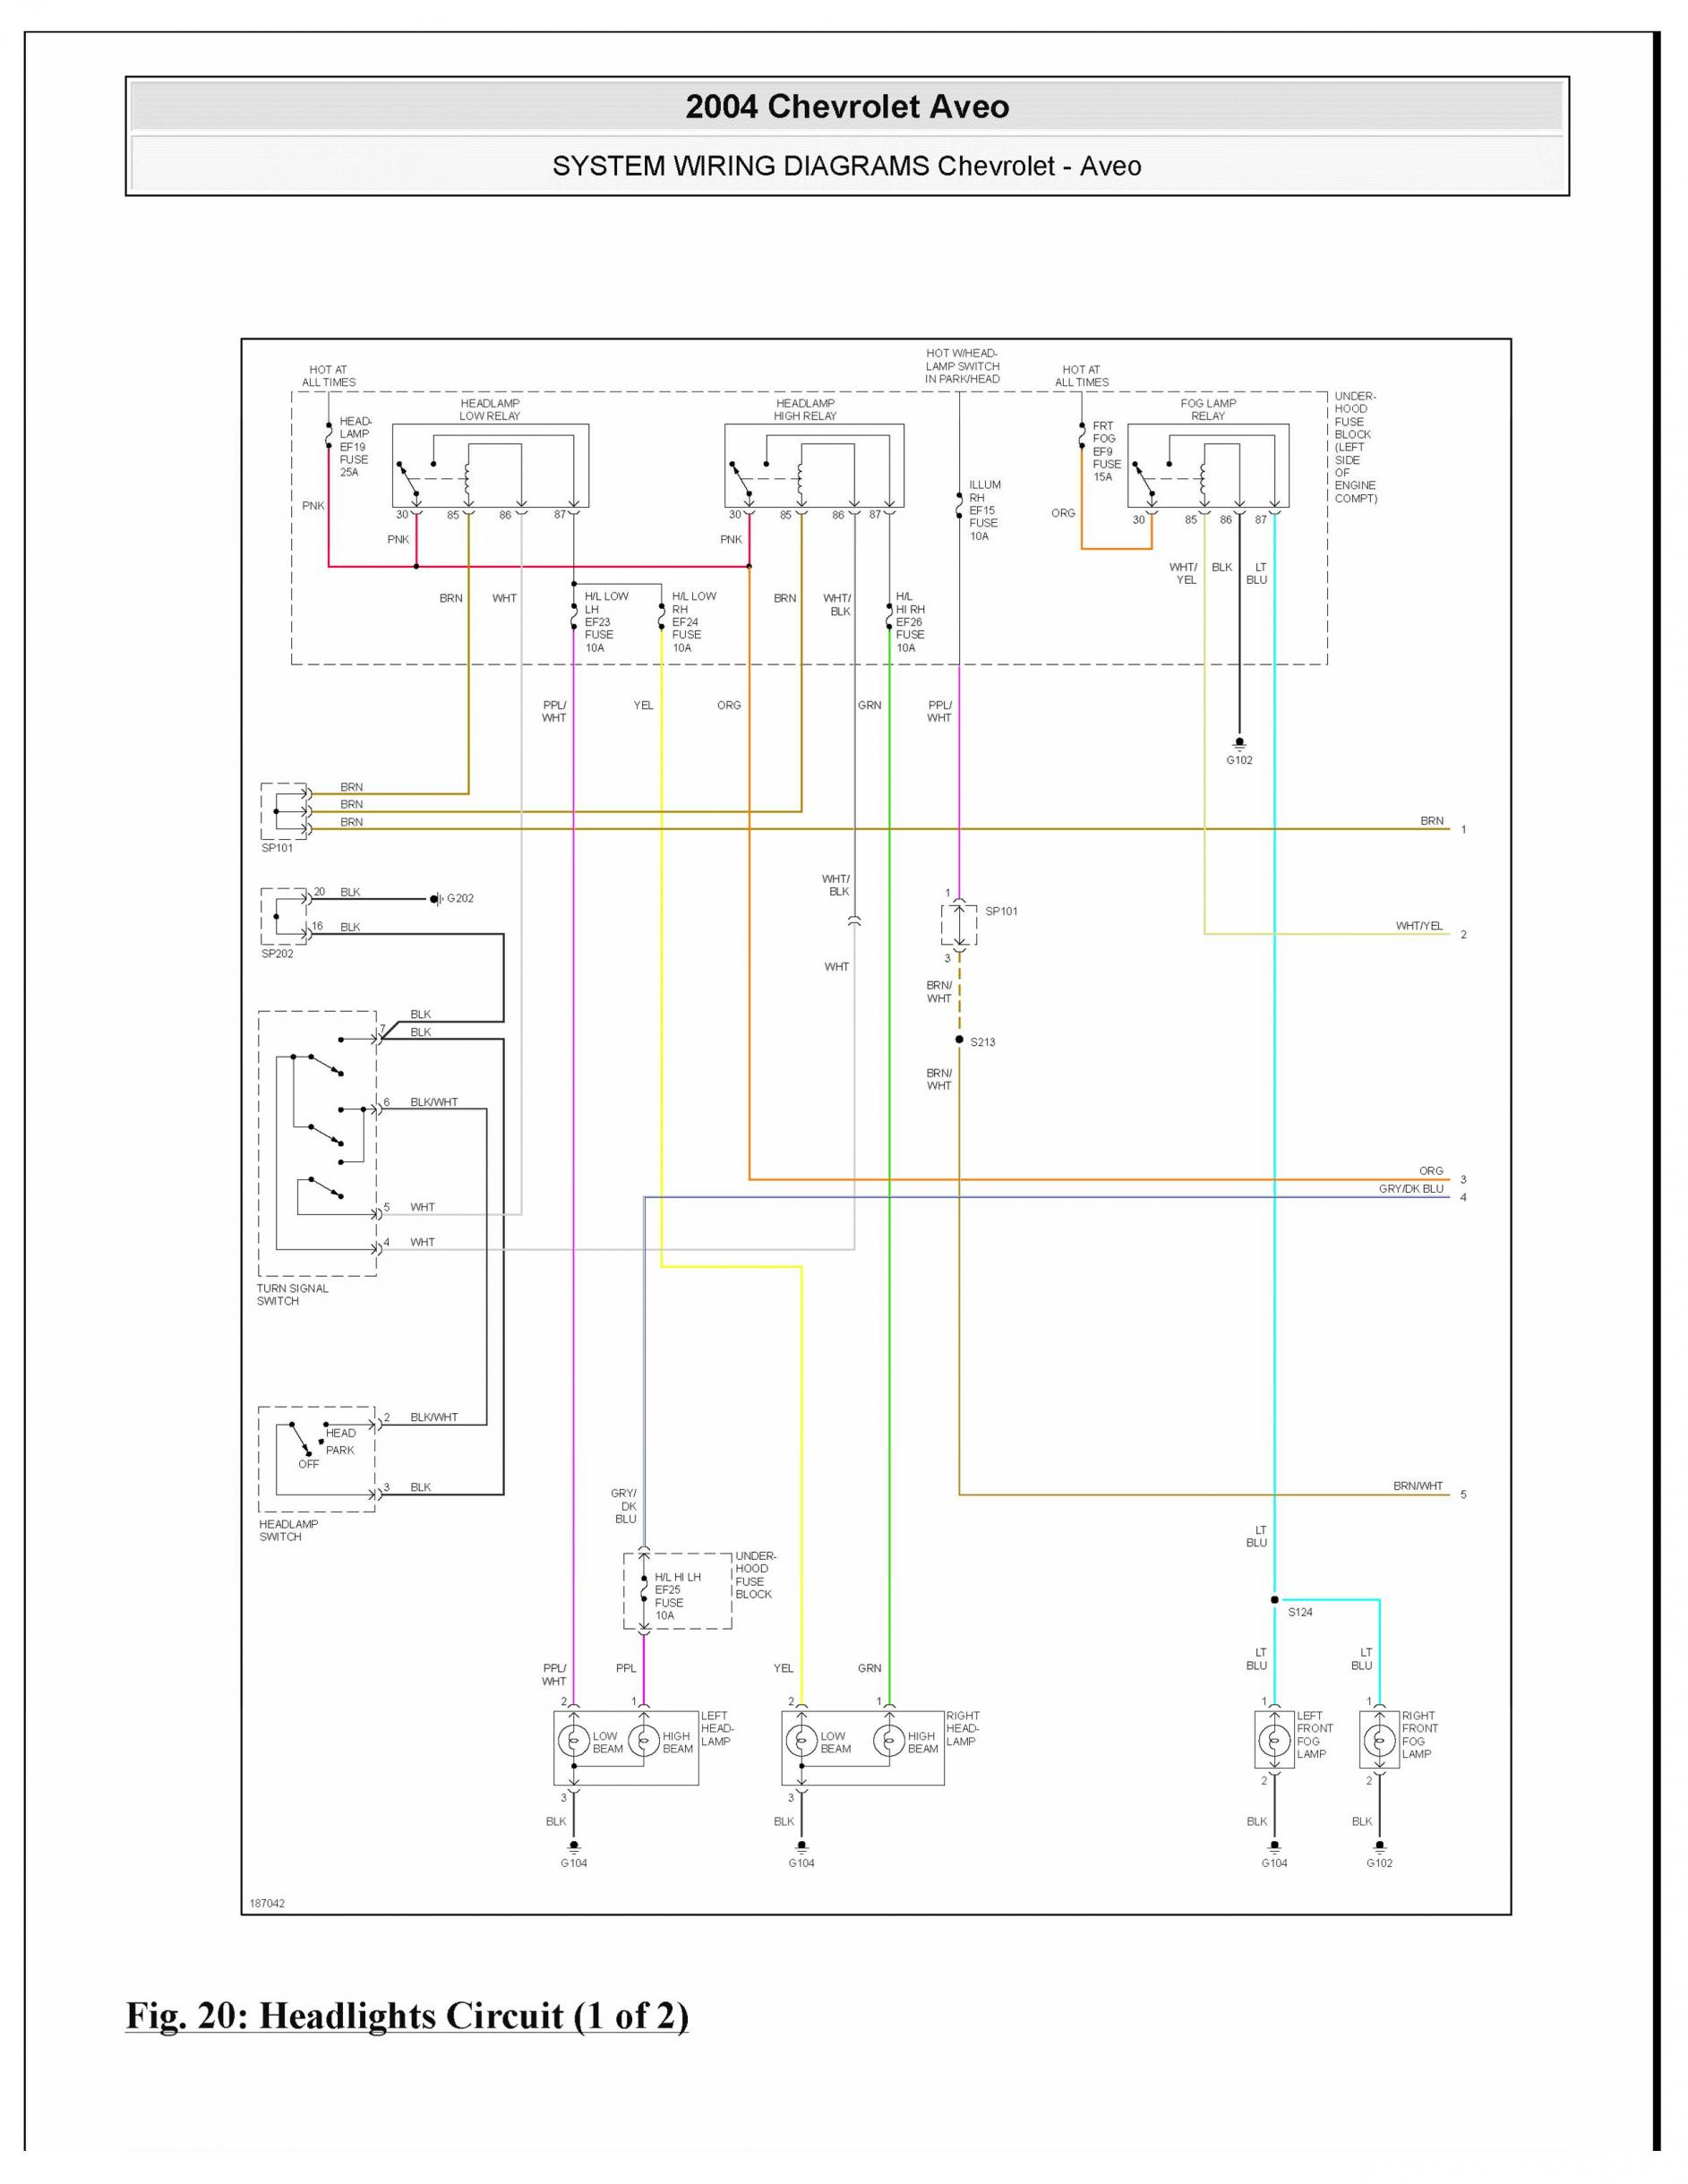 2004 Chevy Aveo Engine Diagram Free Wiring For You Chevrolet Diagrams Manuals 2010 Origin Rh 5 4 3 Darklifezine De 2005